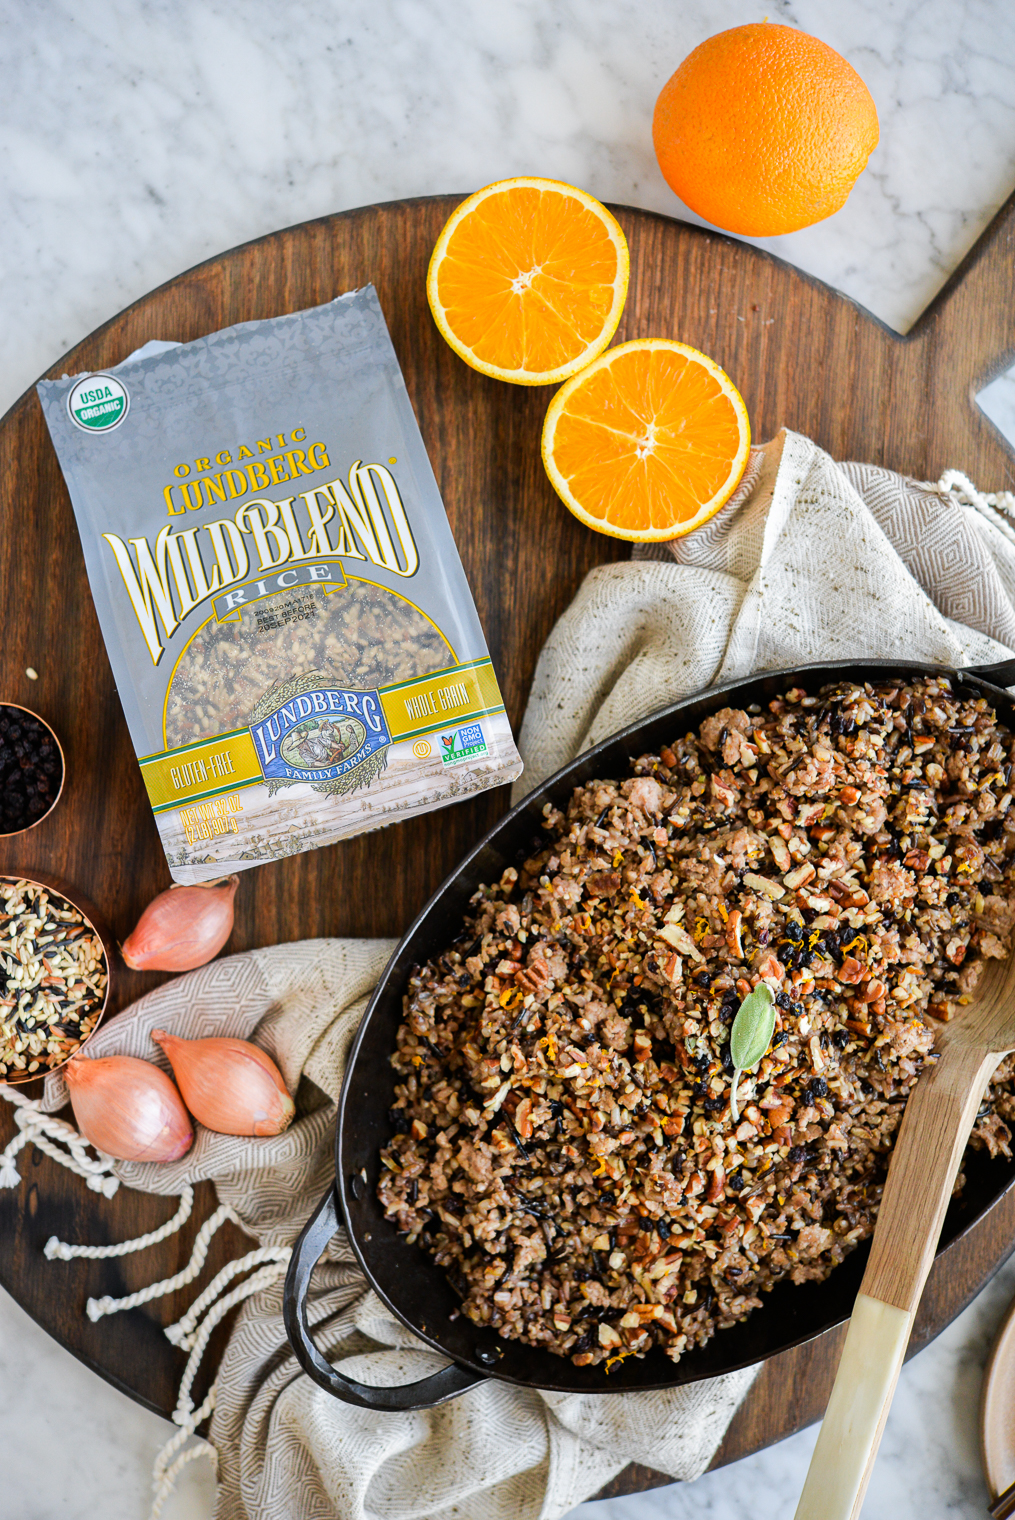 a dish of wild rice stuffing sitting on a wood board next to a bag of Lundberg Wild Rice Blend, a halved orange, and whole shallots